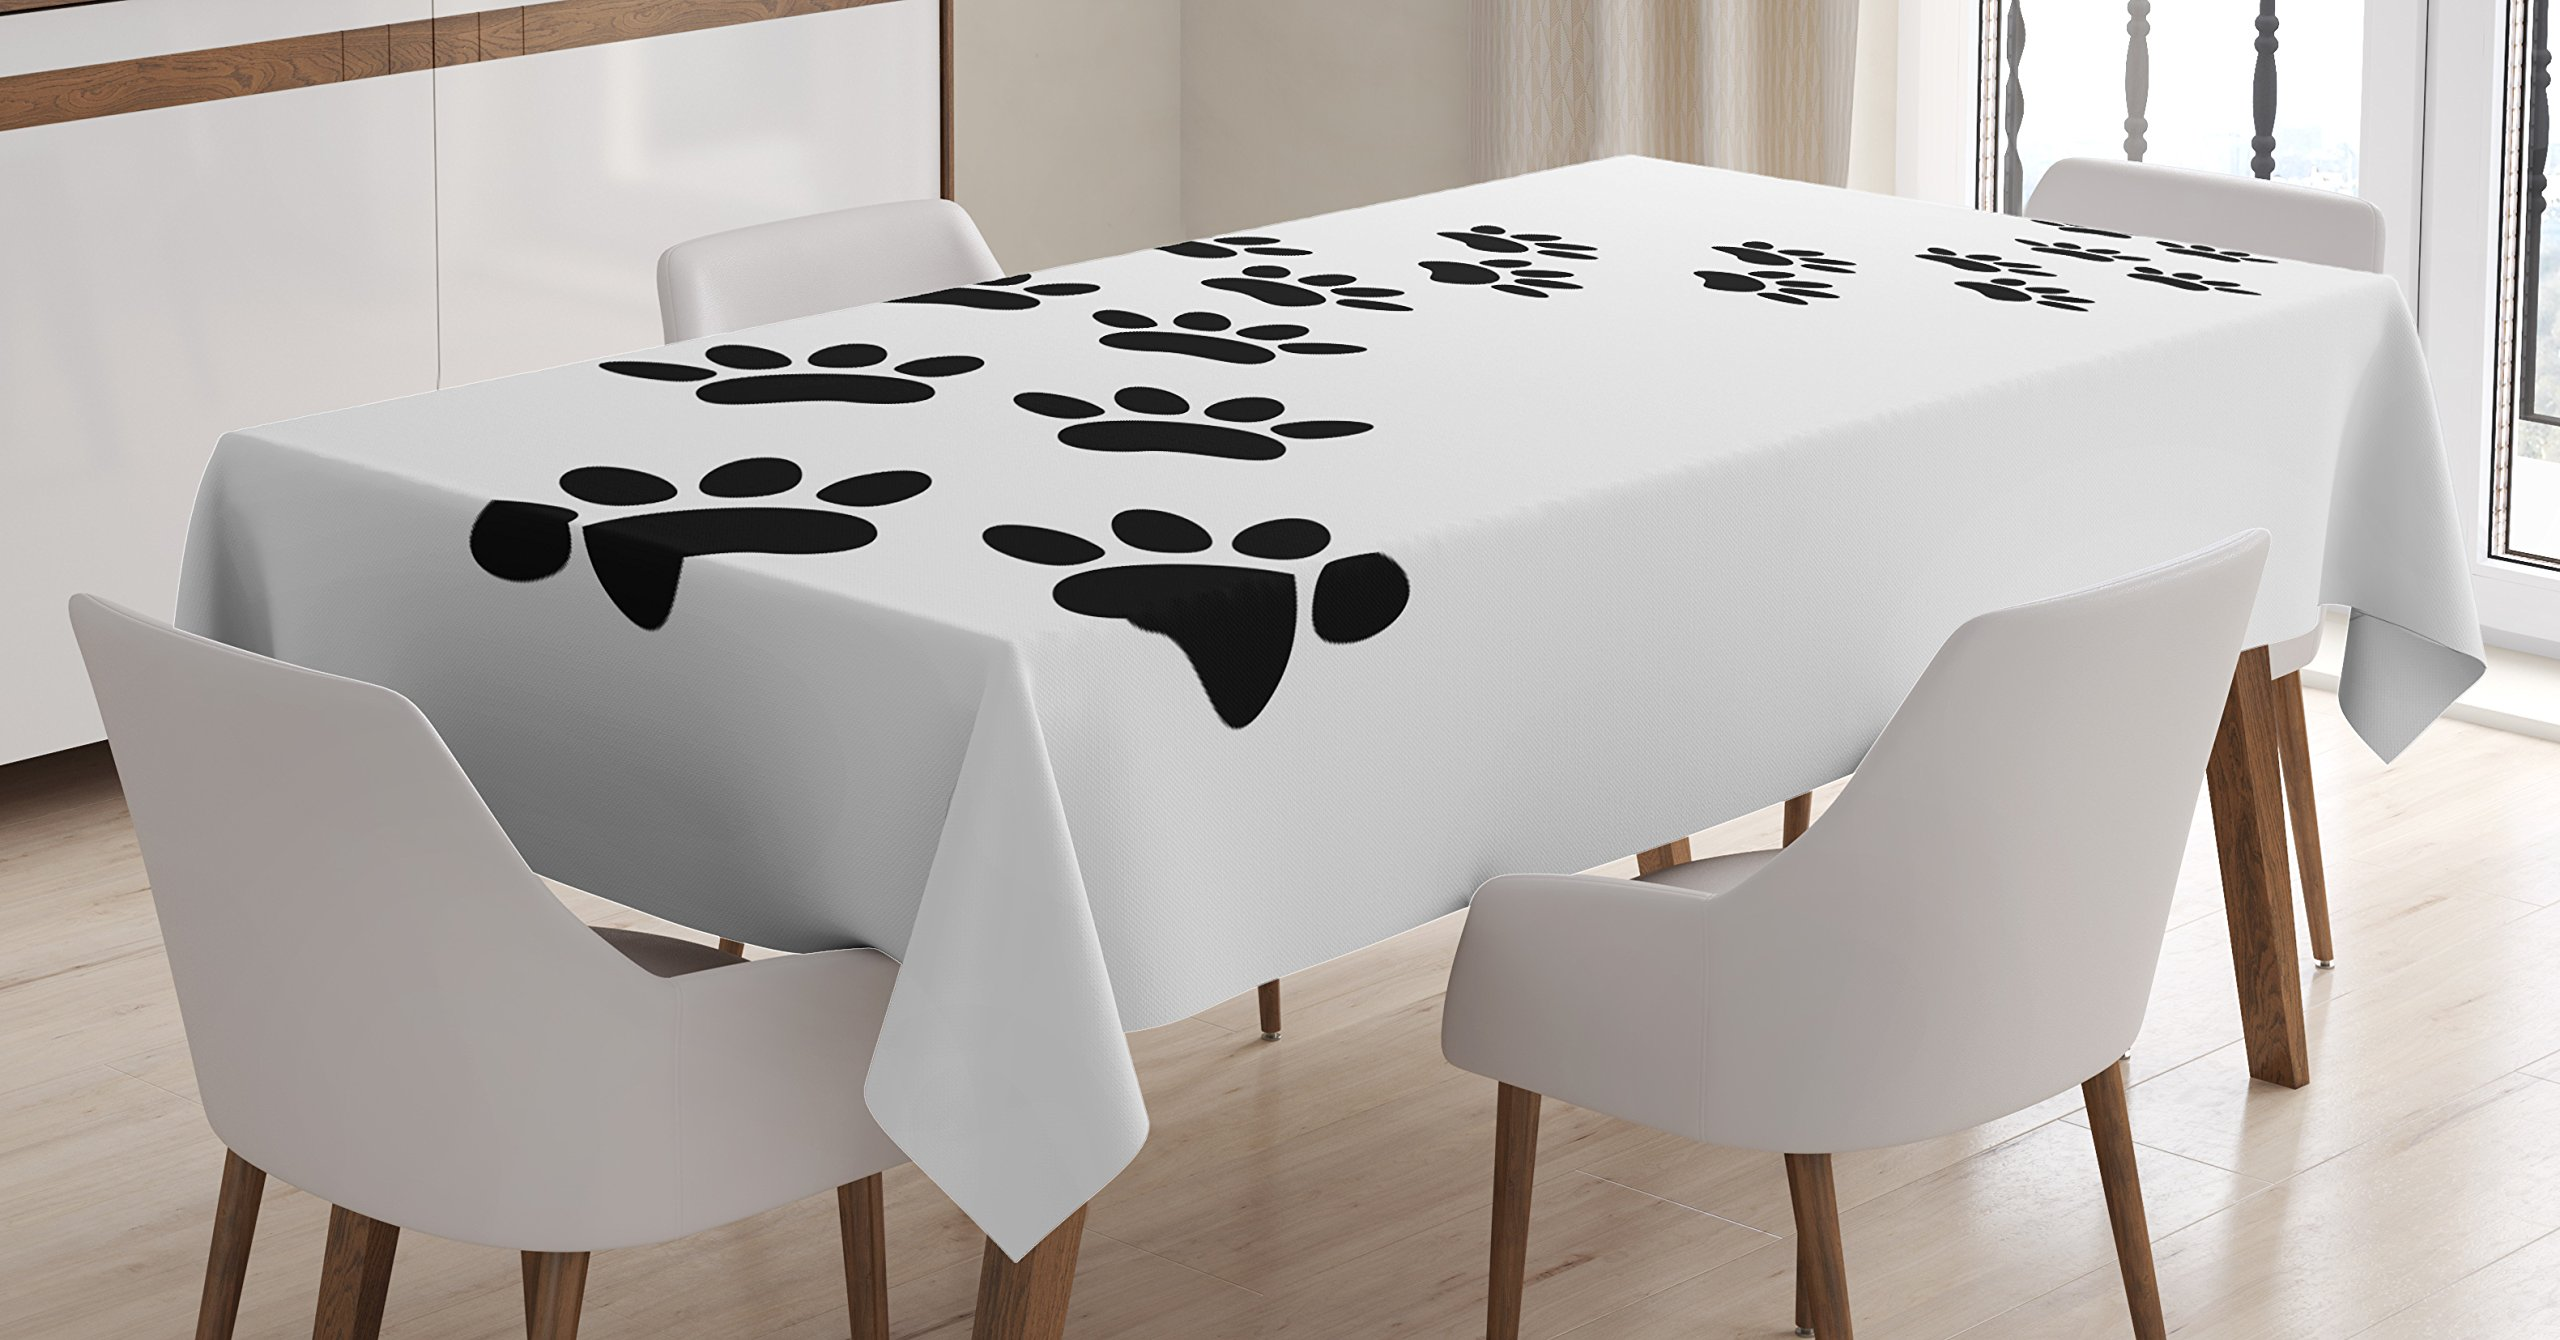 Lunarable Animal Tablecloth, Monochrome Paw Print Illustration Kitten and Dog Pet Themed Abstract Silhouettes, Dining Room Kitchen Rectangular Table Cover, 52 W X 70 L inches, Black White